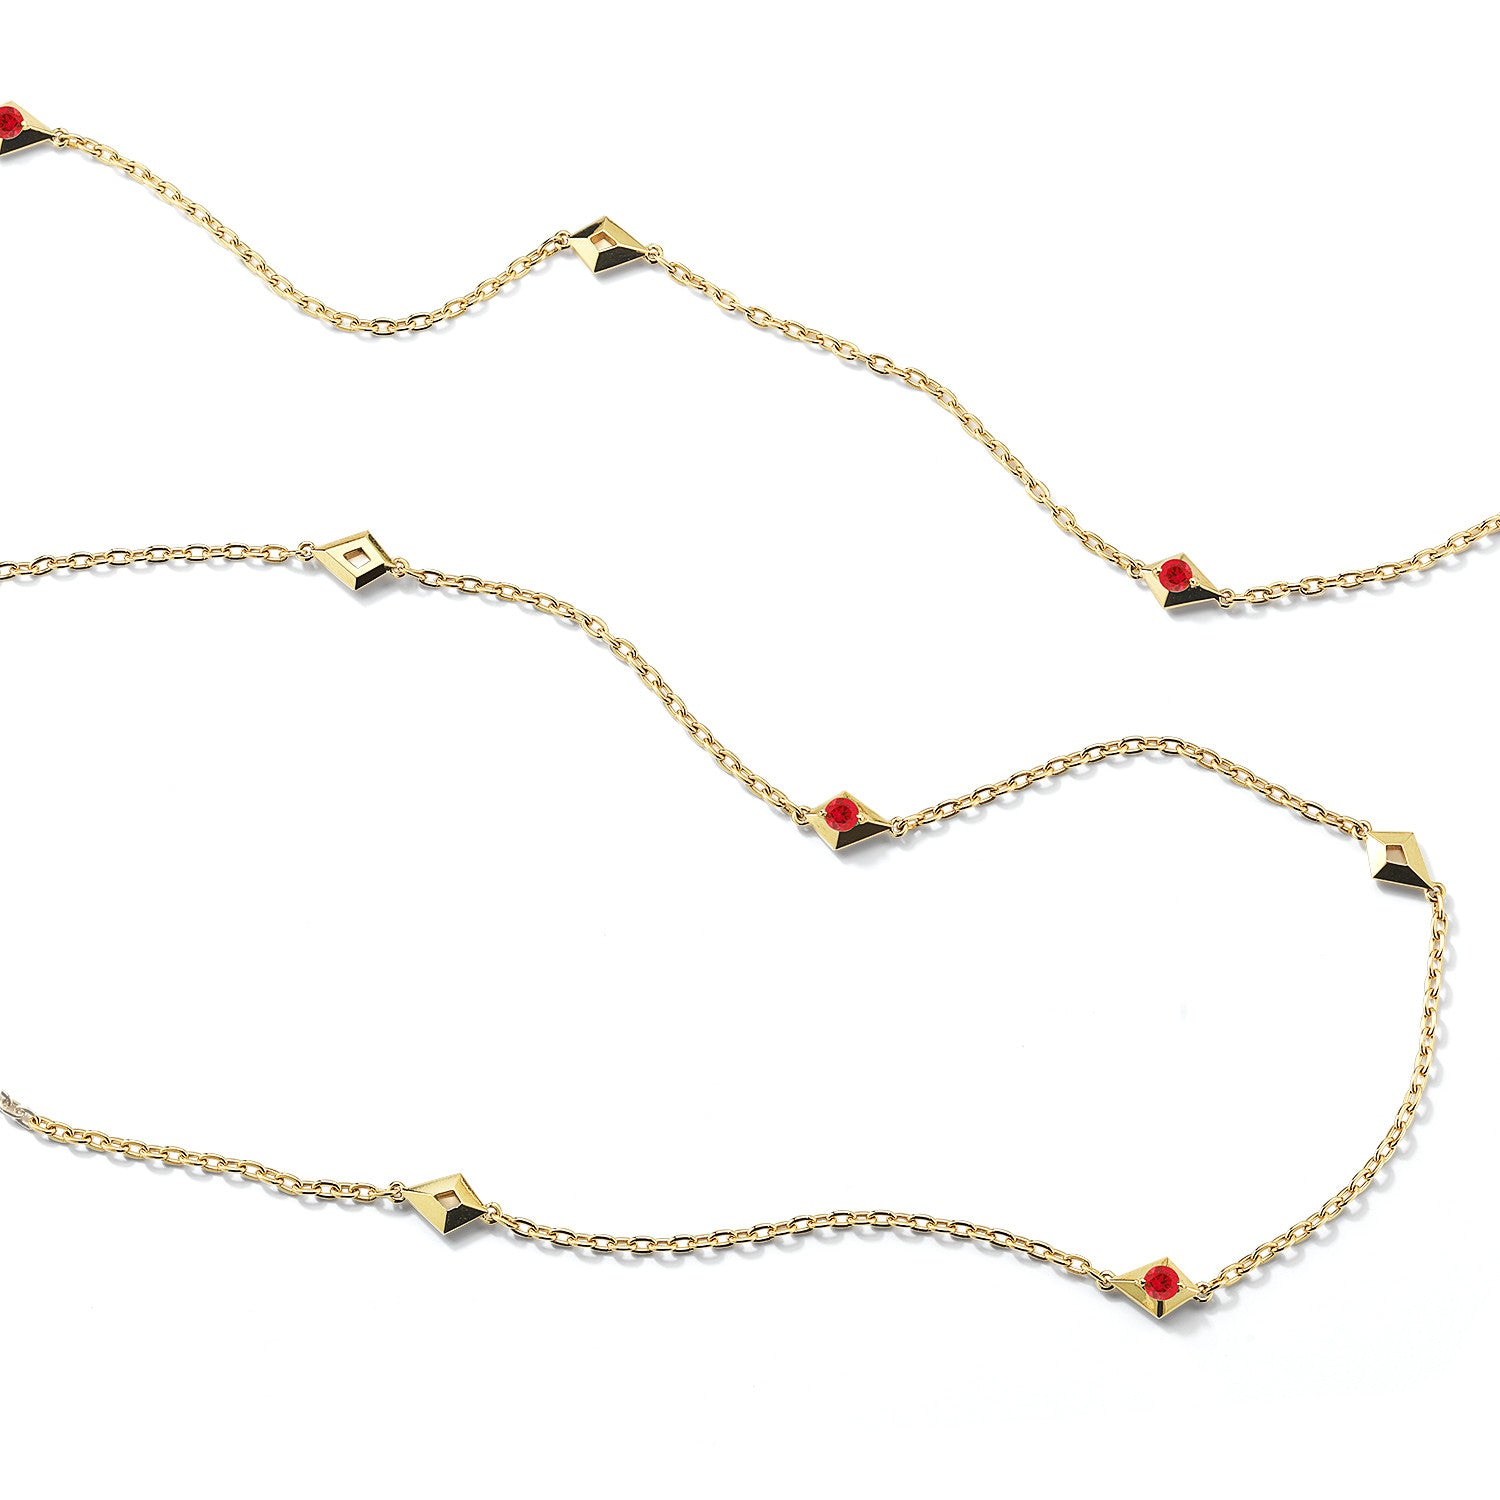 usa chain sugden fine tura san silk products handmade in necklace francisco link ca n jewelry